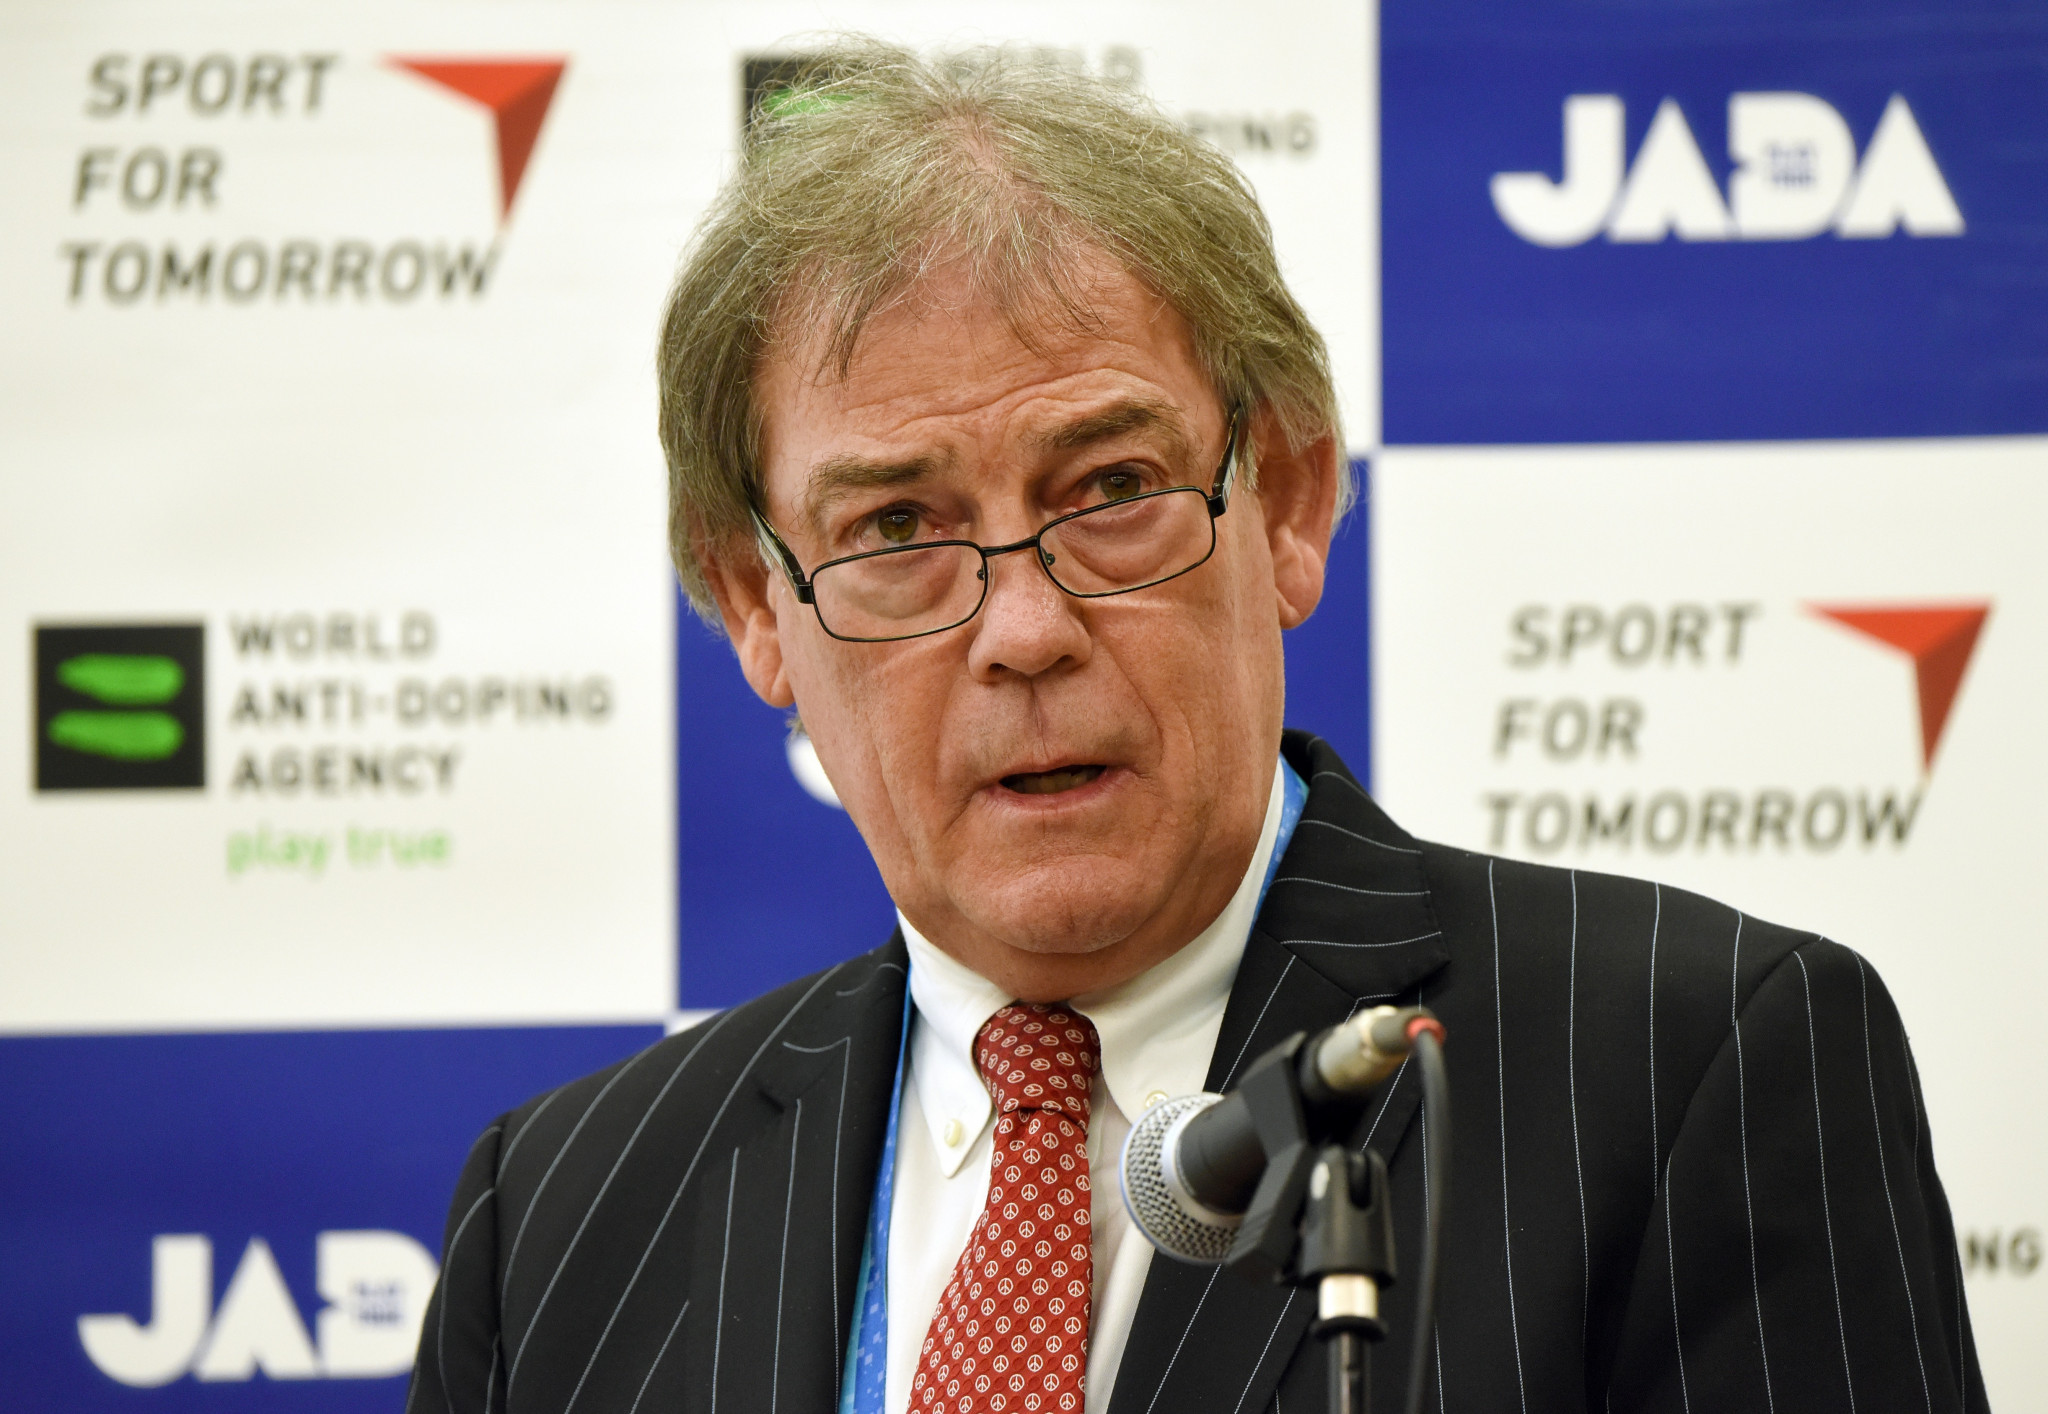 David Howman proposed a global sports integrity body as far back as 2011 ©Getty Images